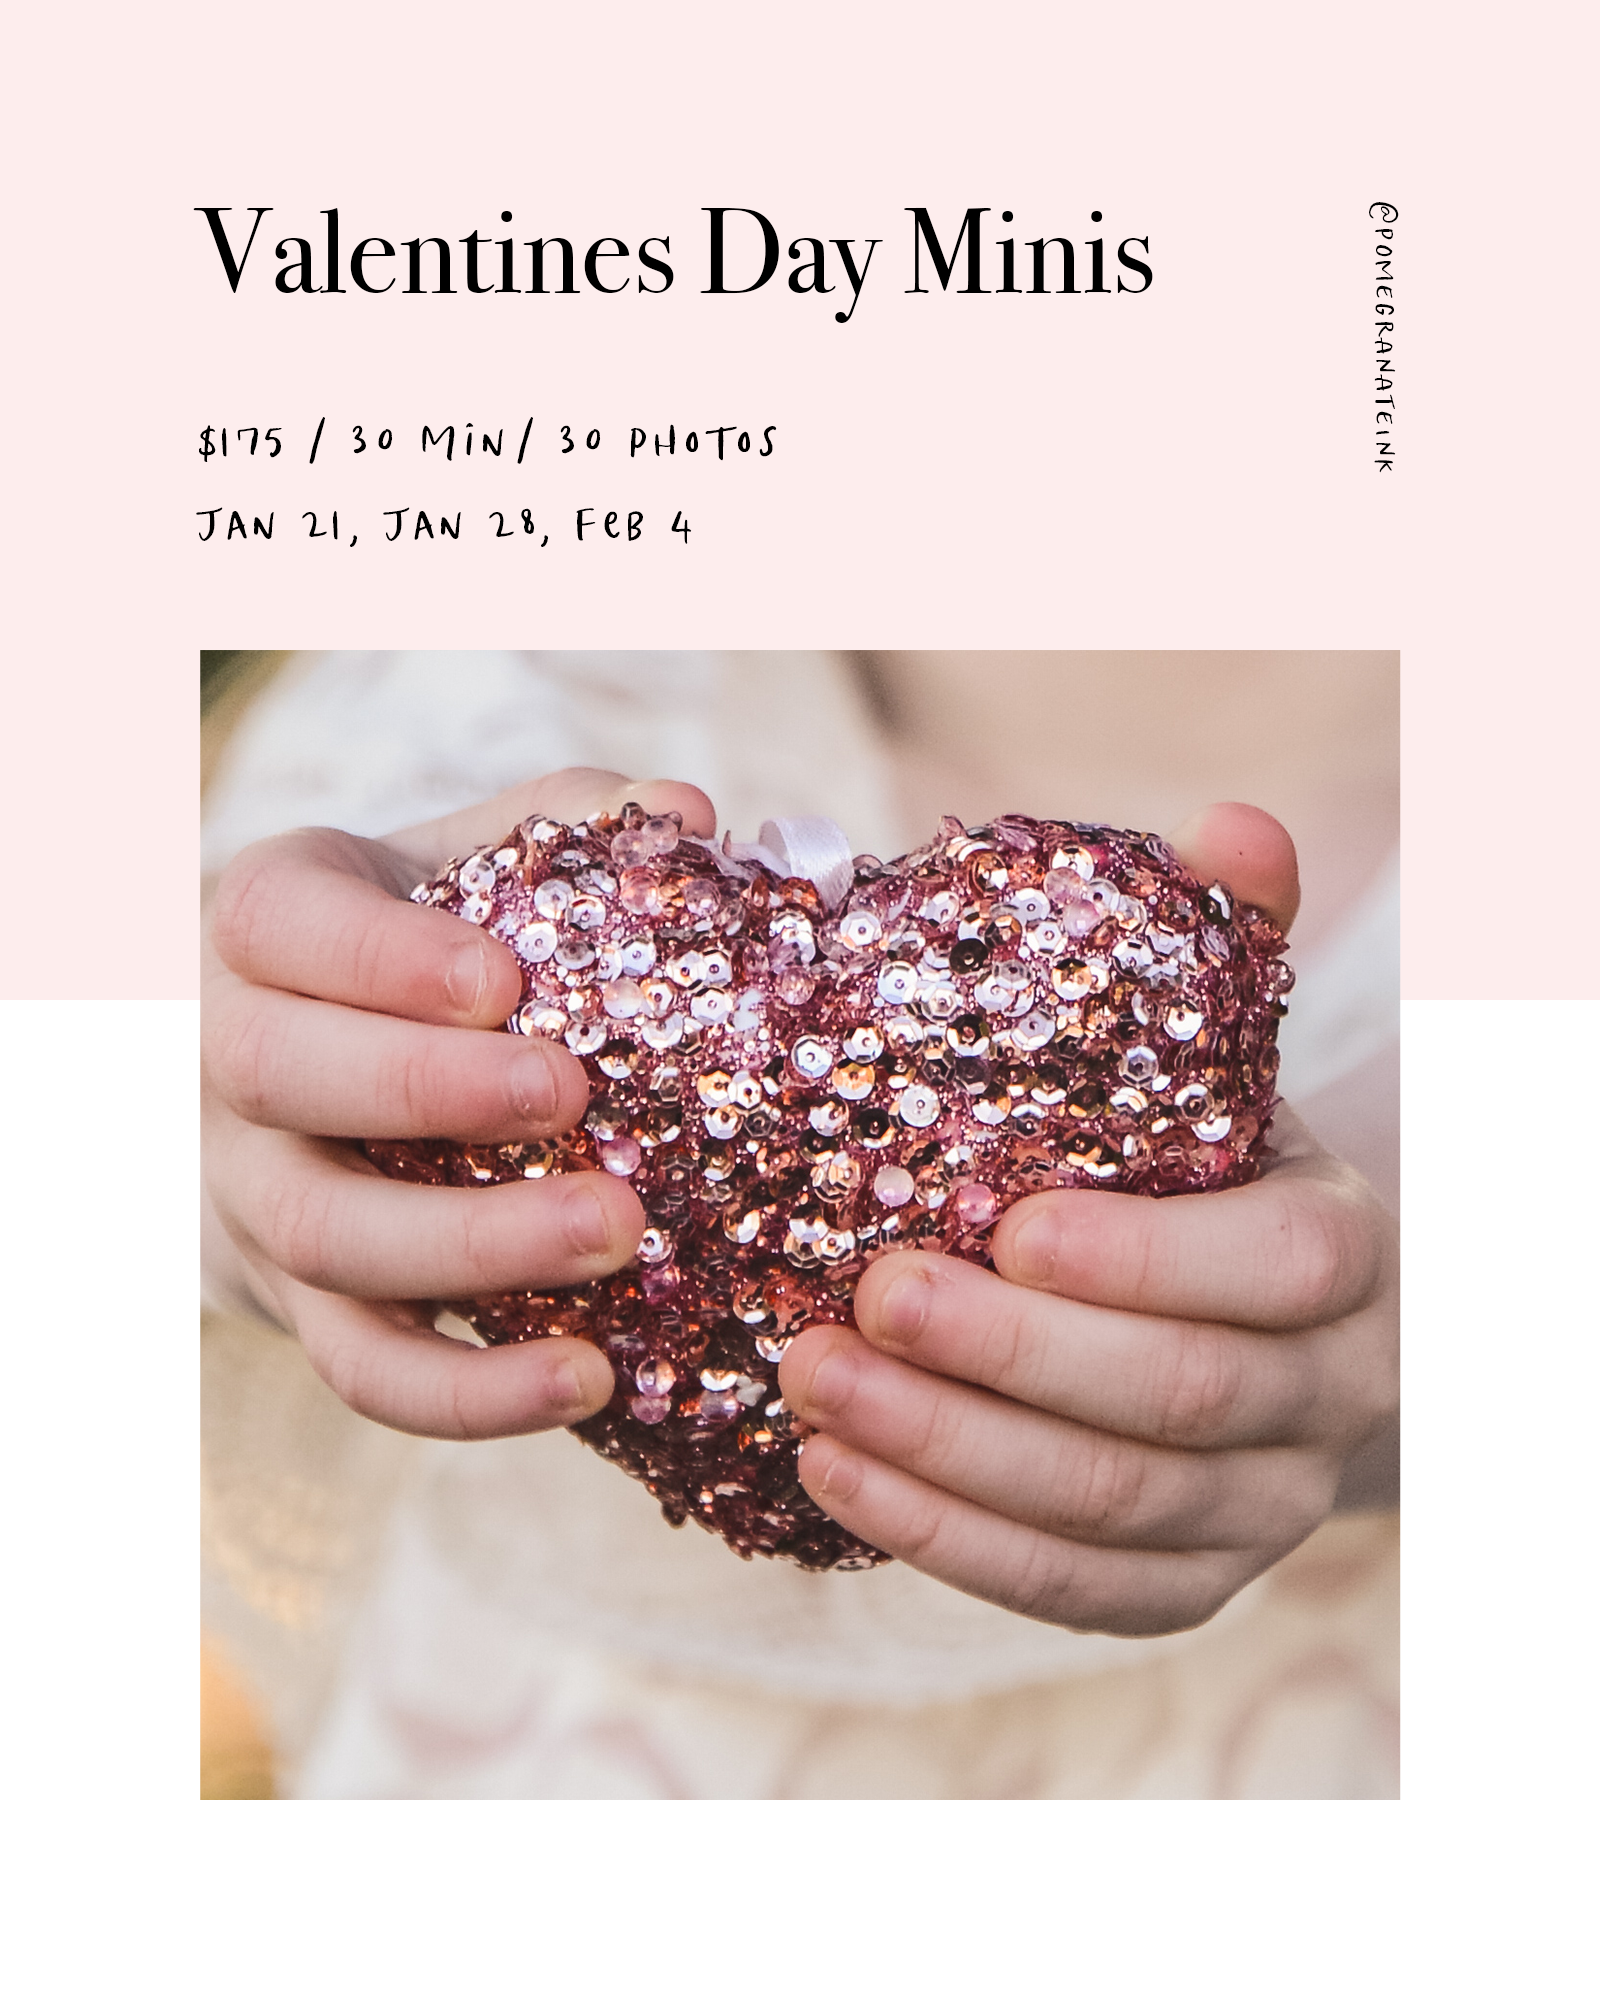 Valentines Day Mini Sessions - Join me for a 30 minute mini session this January and February.